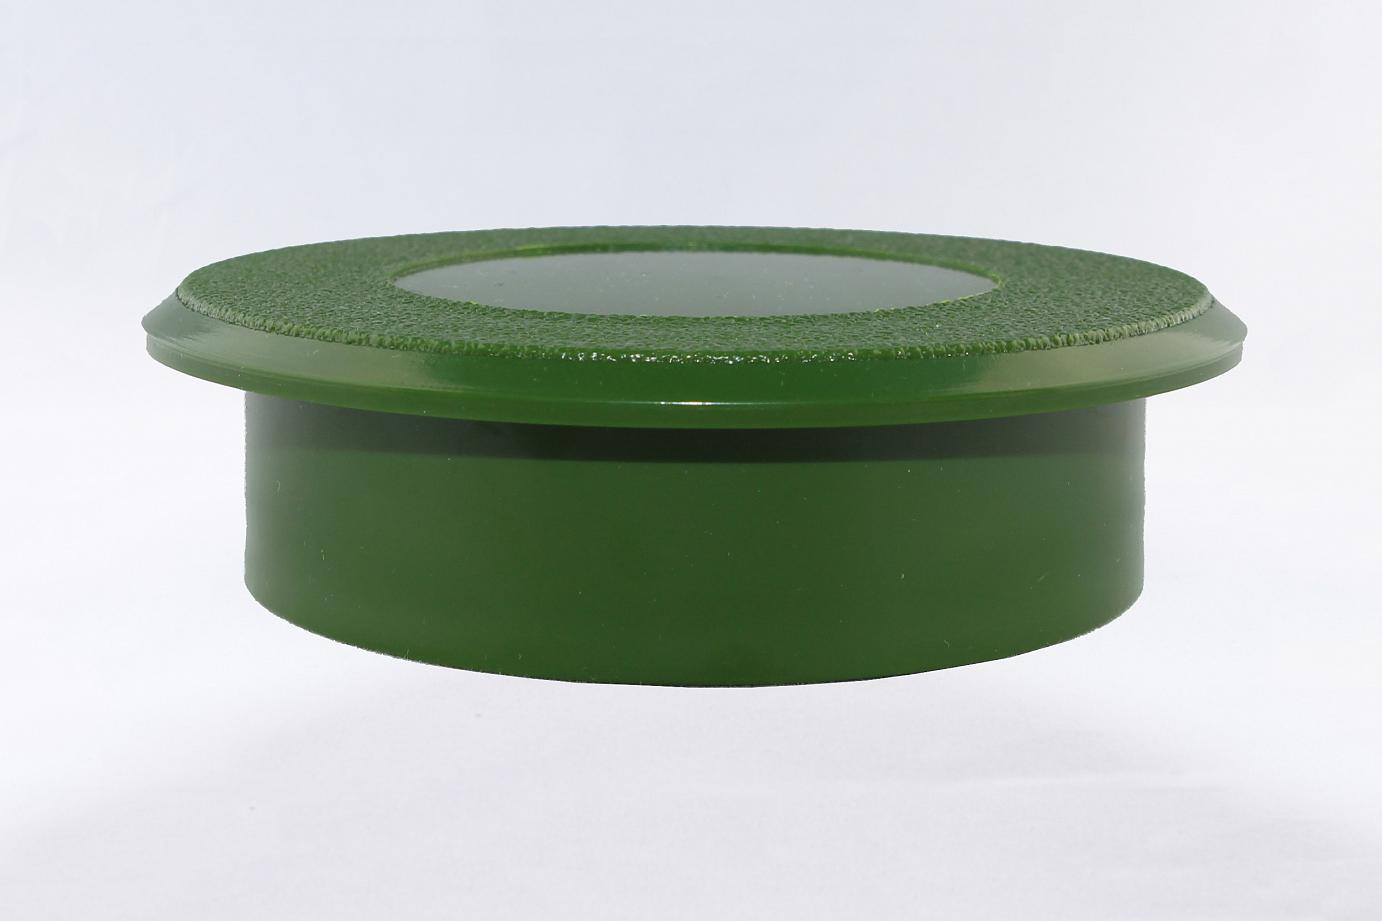 Golf Hole Cup Cover for Putting Green Cups Artificial Grass Florida Florida Synthetic Grass Tools Installation Florida